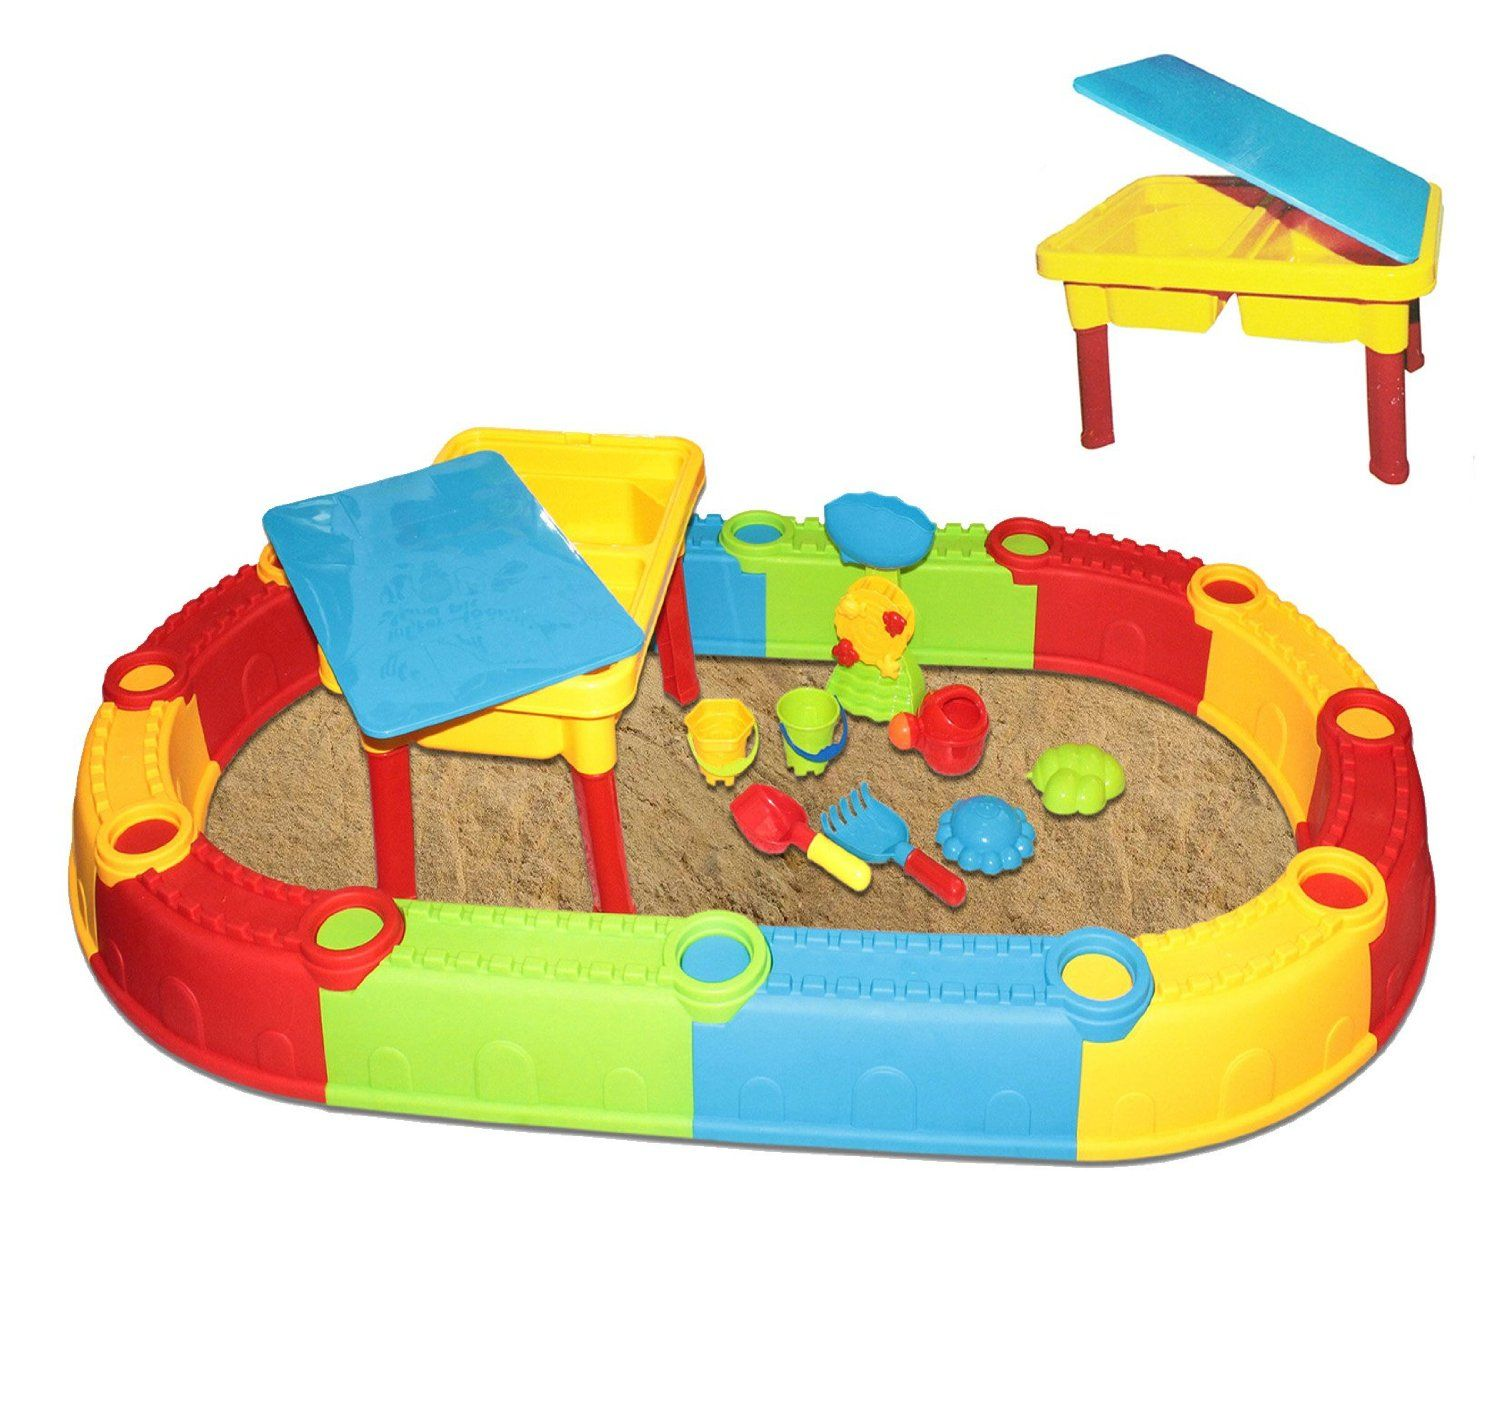 SW LA deAO Toddler Kids Children Sand and Water Table with Play